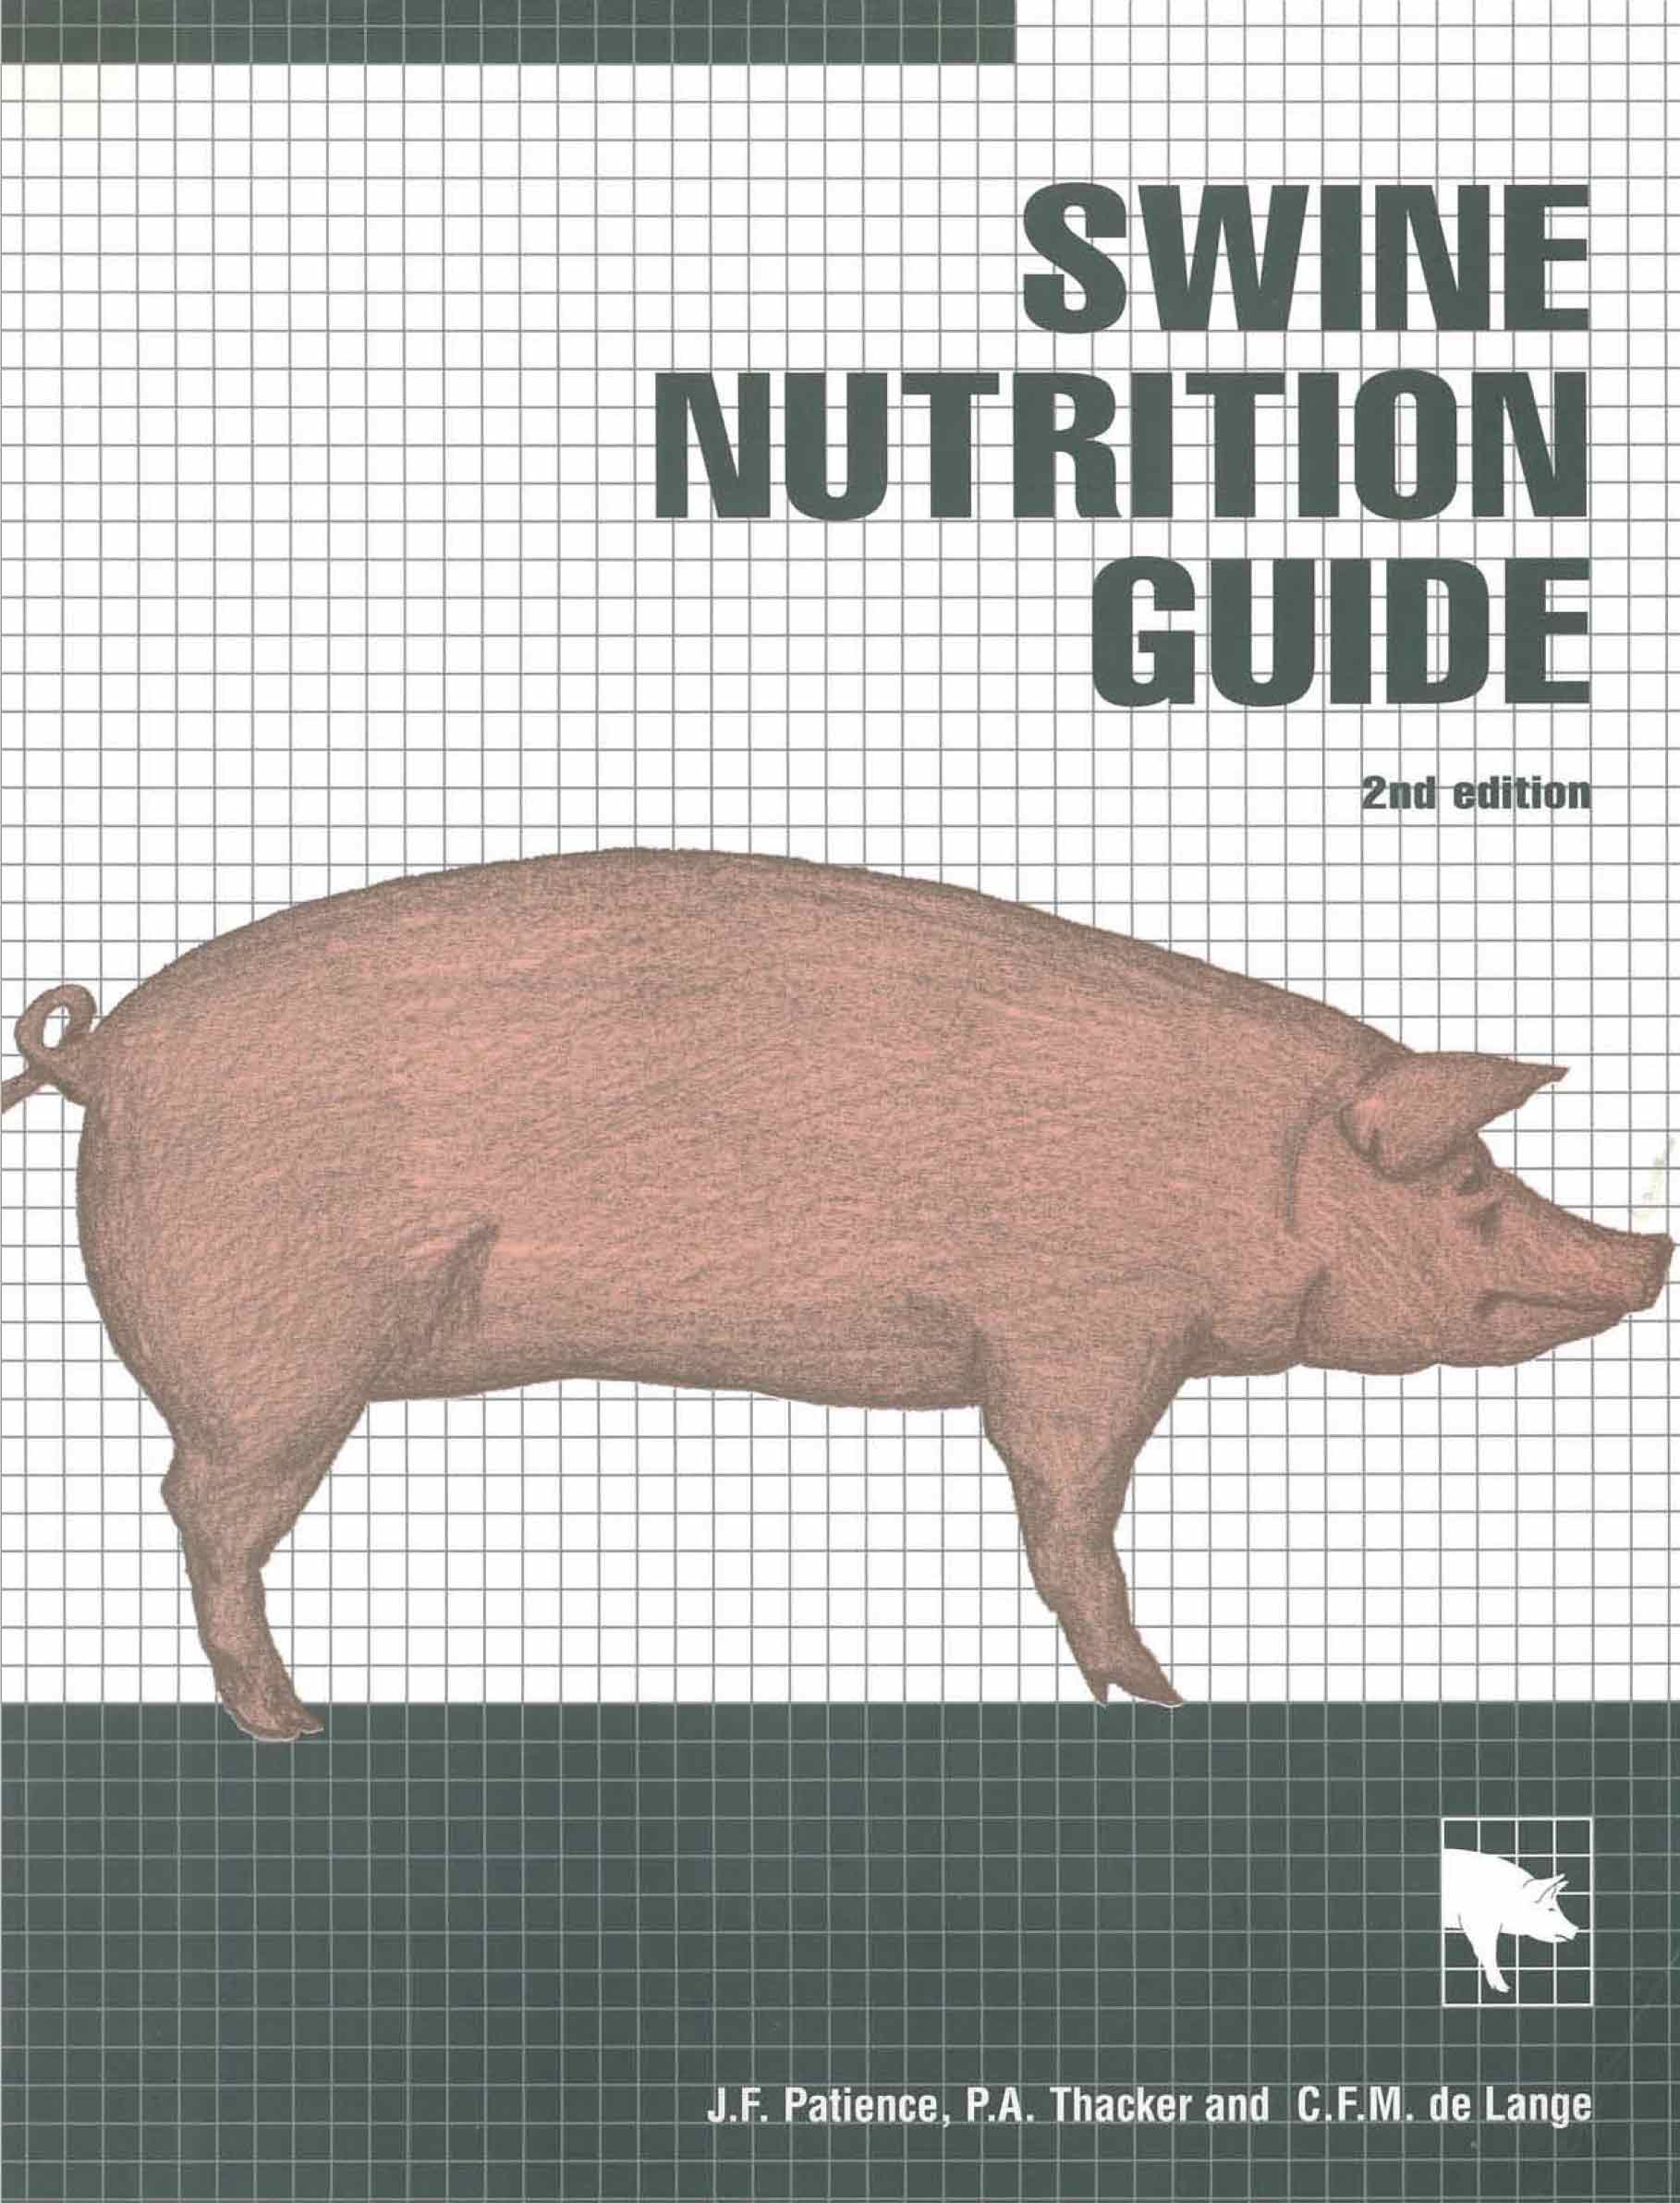 Swine Nutrition Guide - 2nd edition